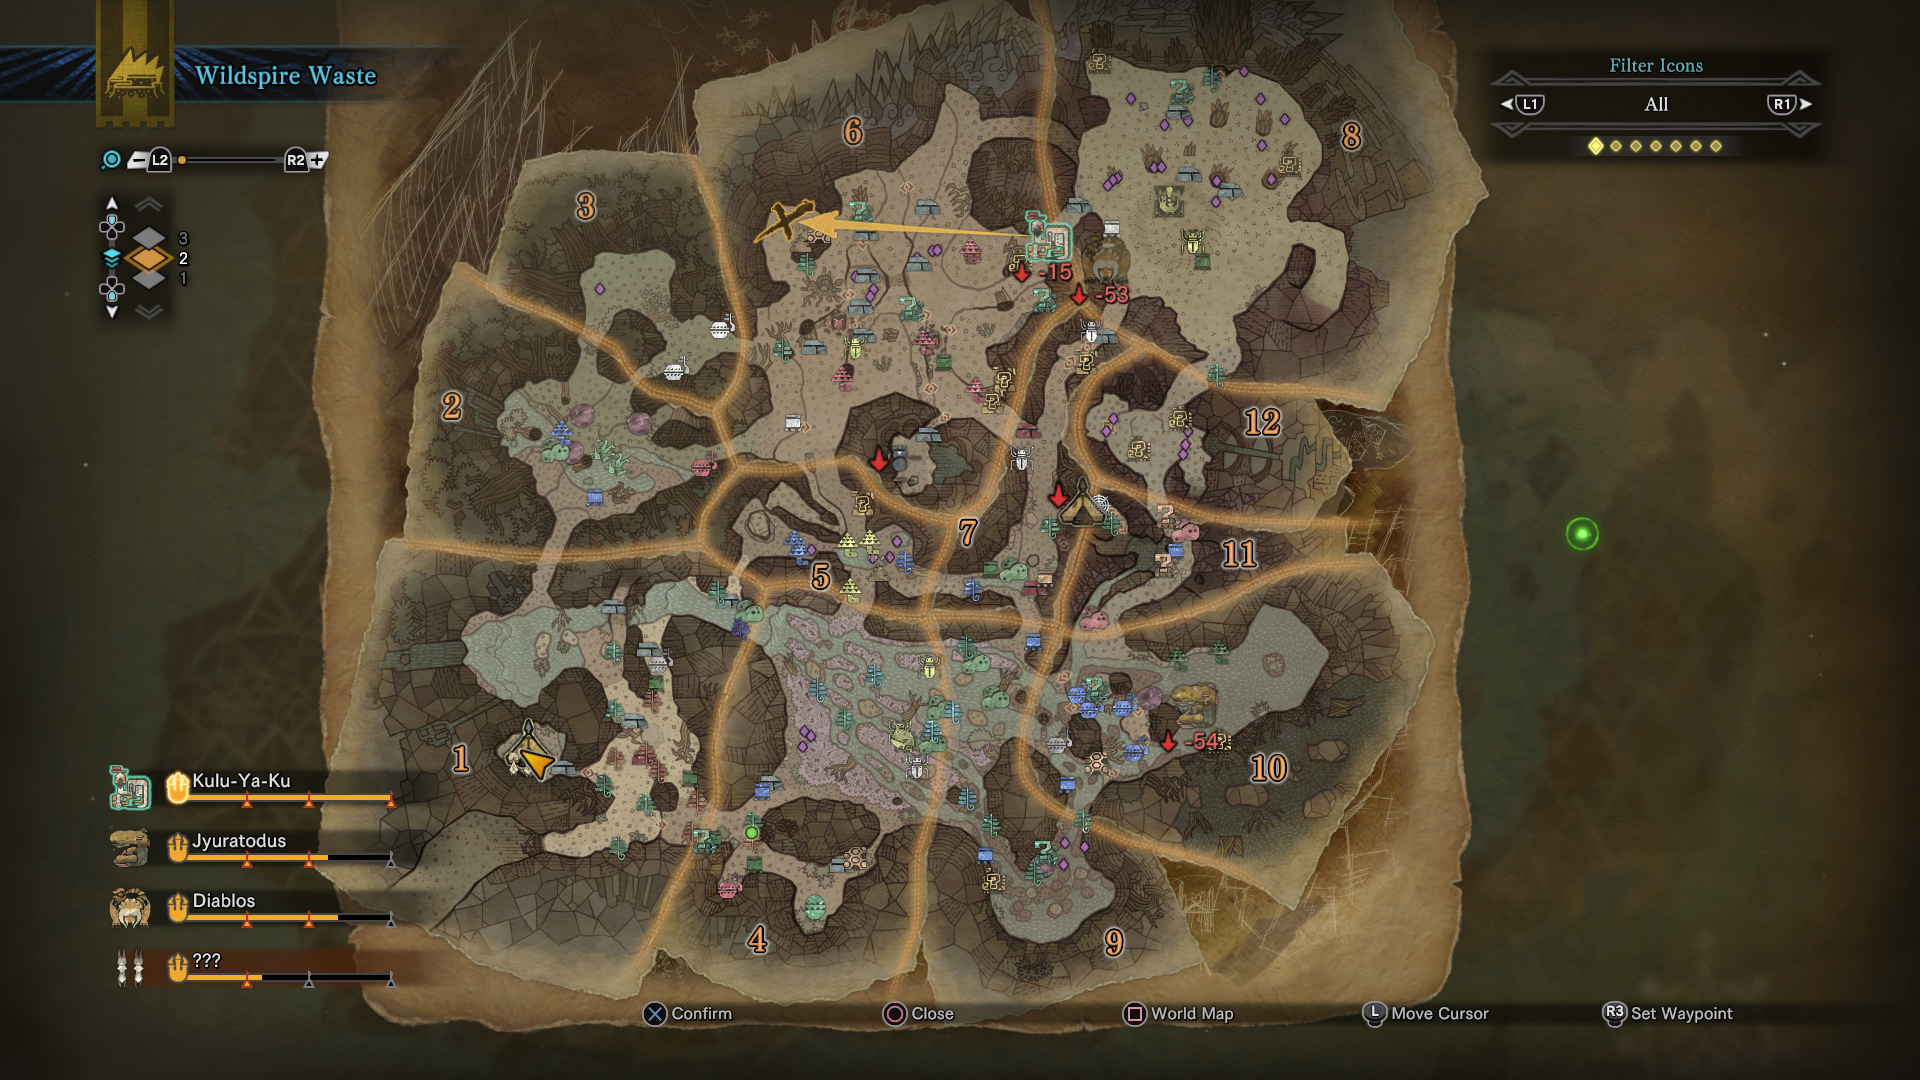 monster_hunter_world_wildspire_waste_map